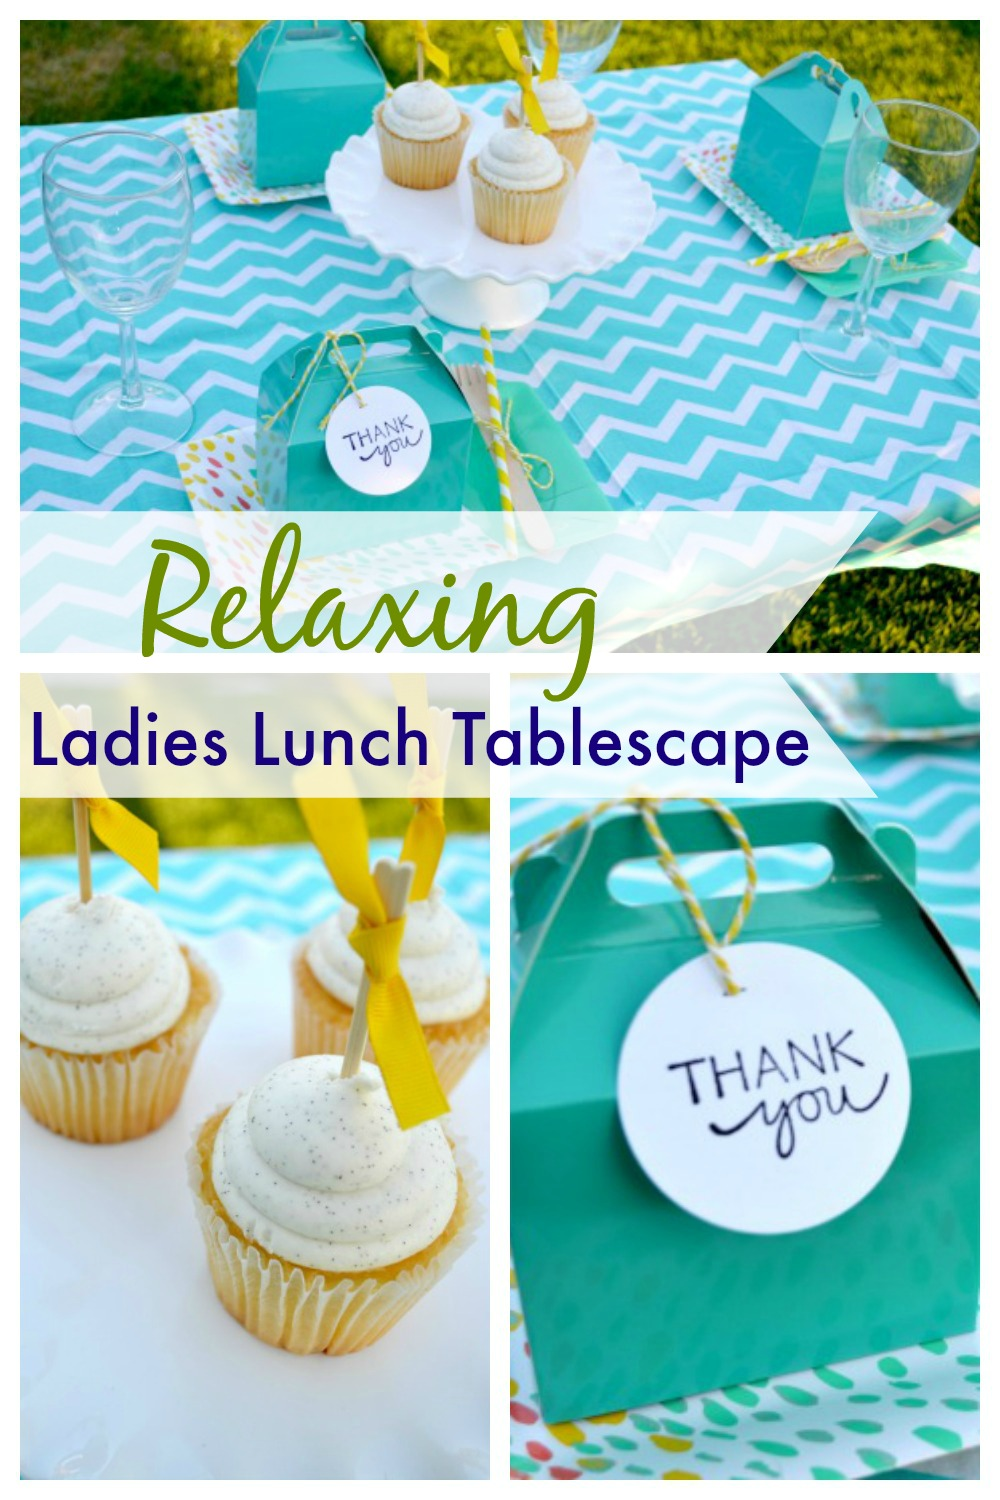 Ladies Lunch Tablescape